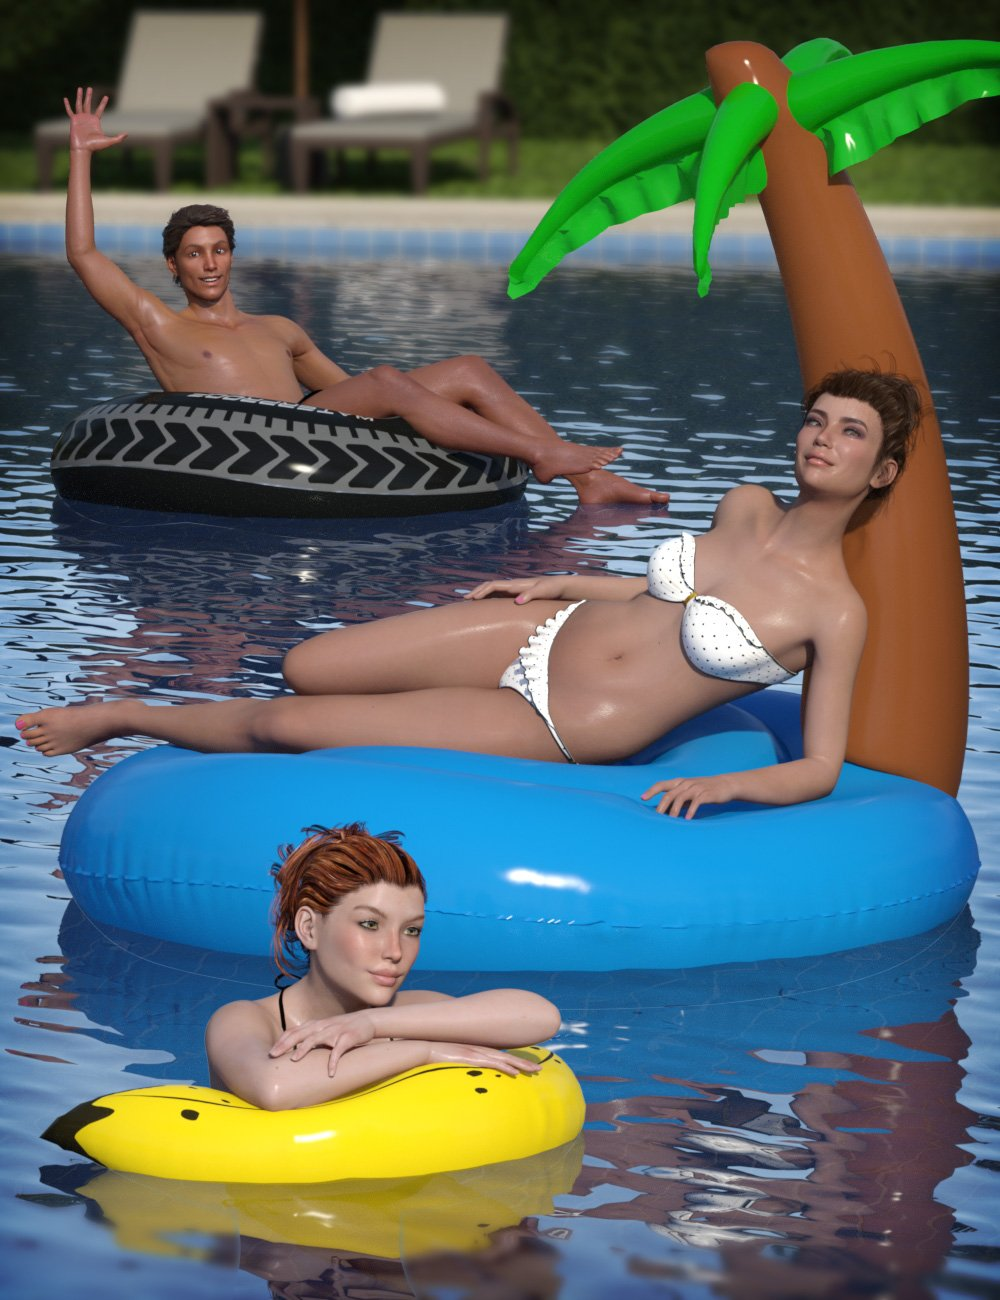 Inflatable Pool Toys & Poses for Genesis 3 and 8 by: eshaFeralFey, 3D Models by Daz 3D